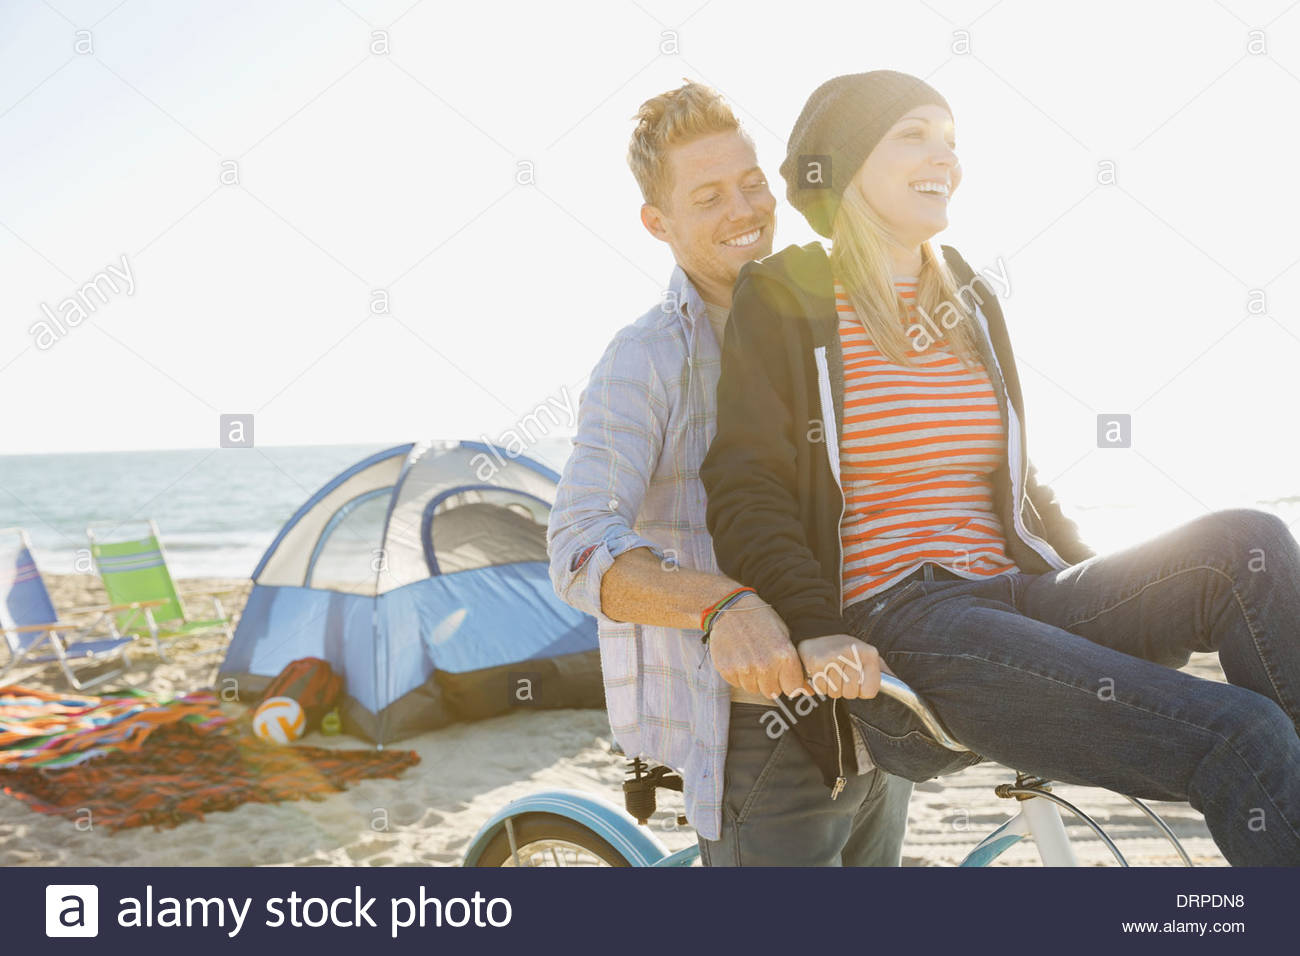 Smiling couple cycling on beach Photo Stock